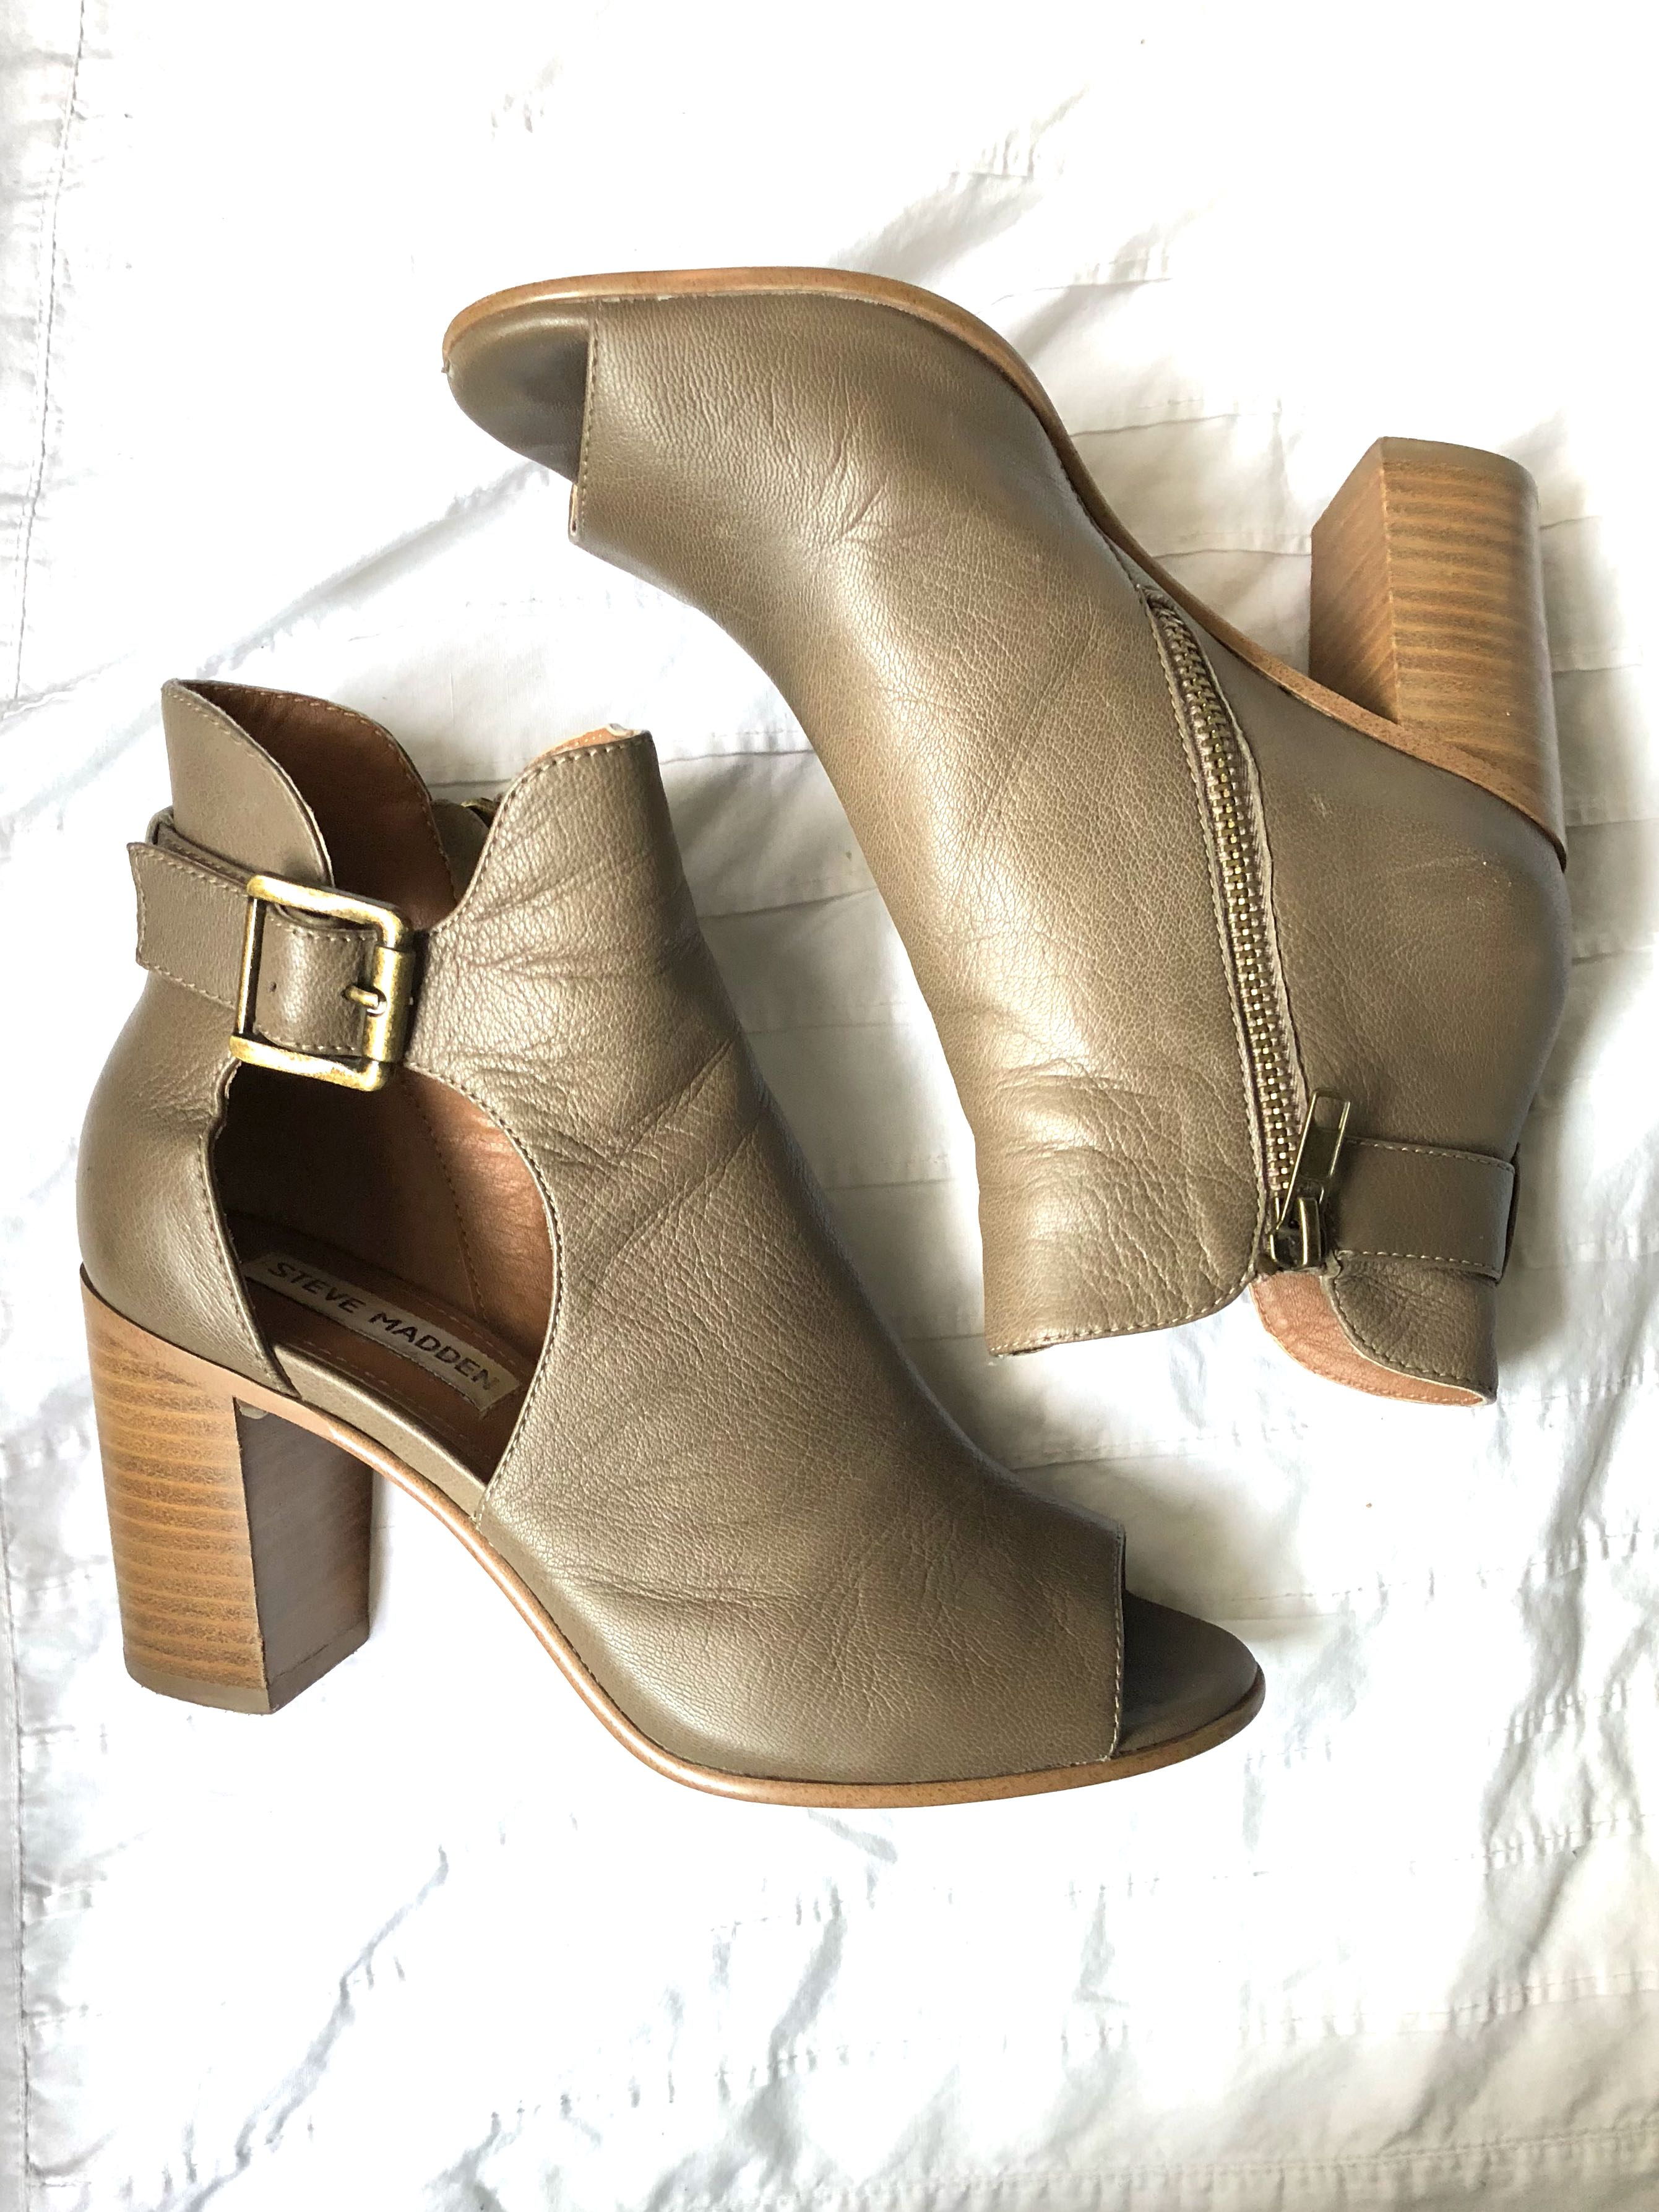 Steve Madden heels - taupe leather 5.5